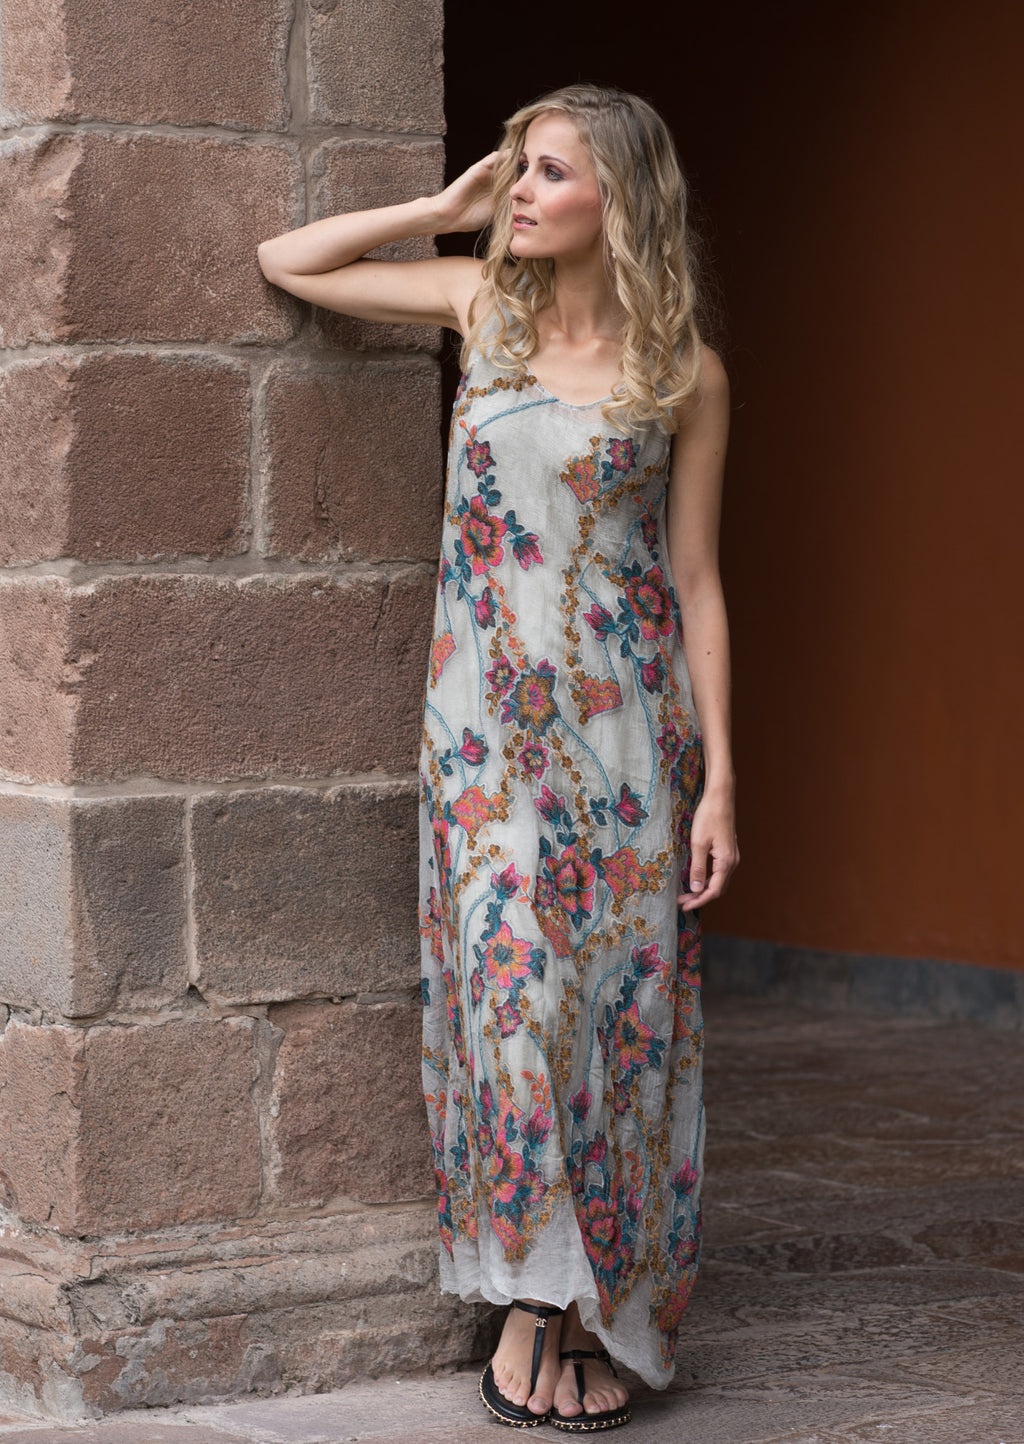 Floral Silk Dress - dolly mama boutique